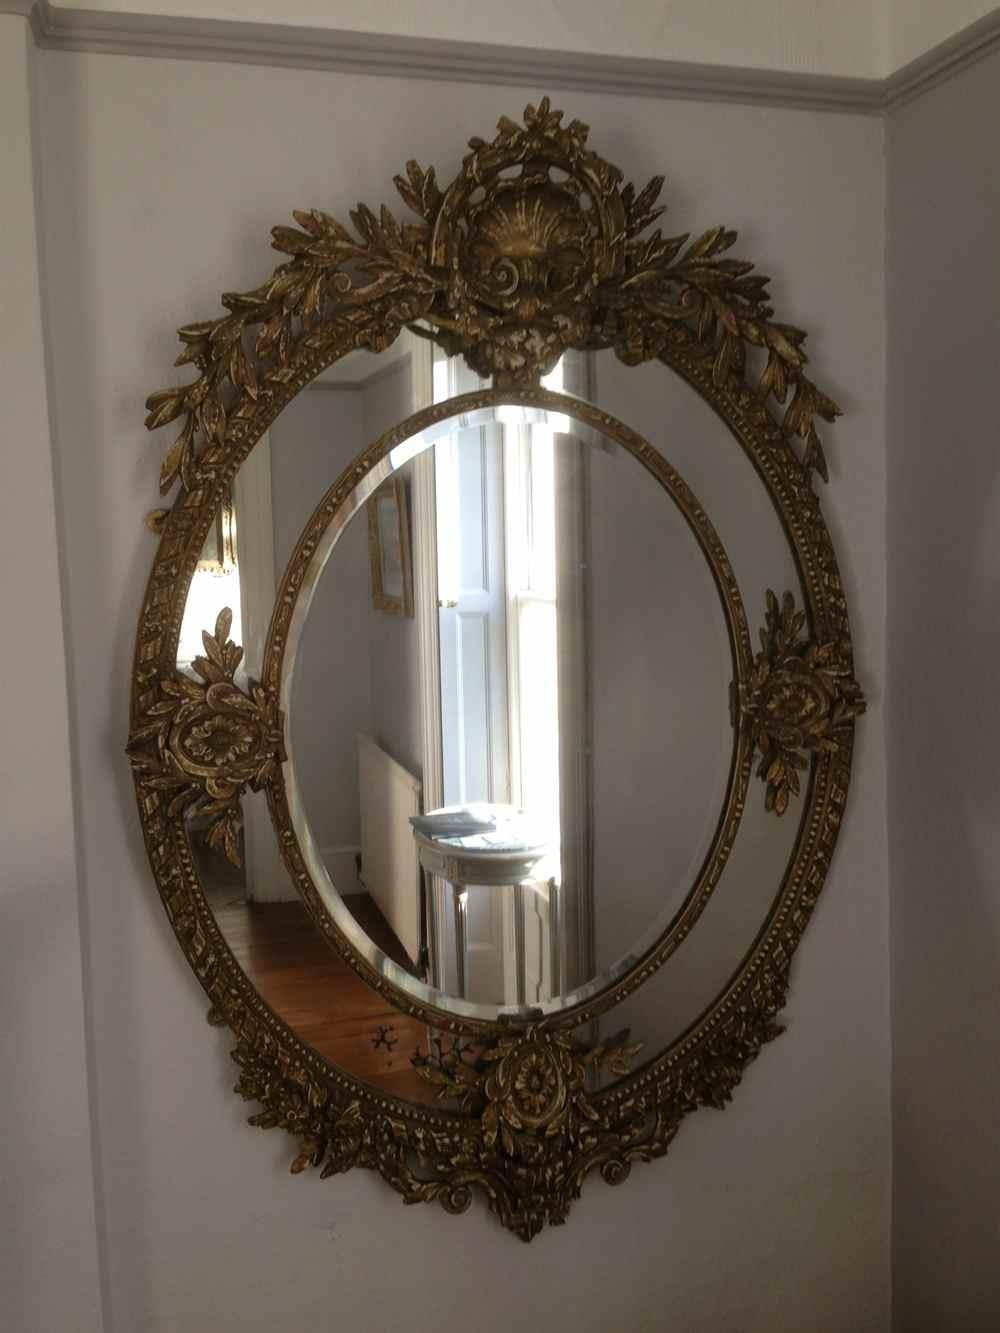 A Wonderful Large Antique 19Th Century French Carved Wood Oval Intended For Antique Mirrors Large (Image 4 of 20)